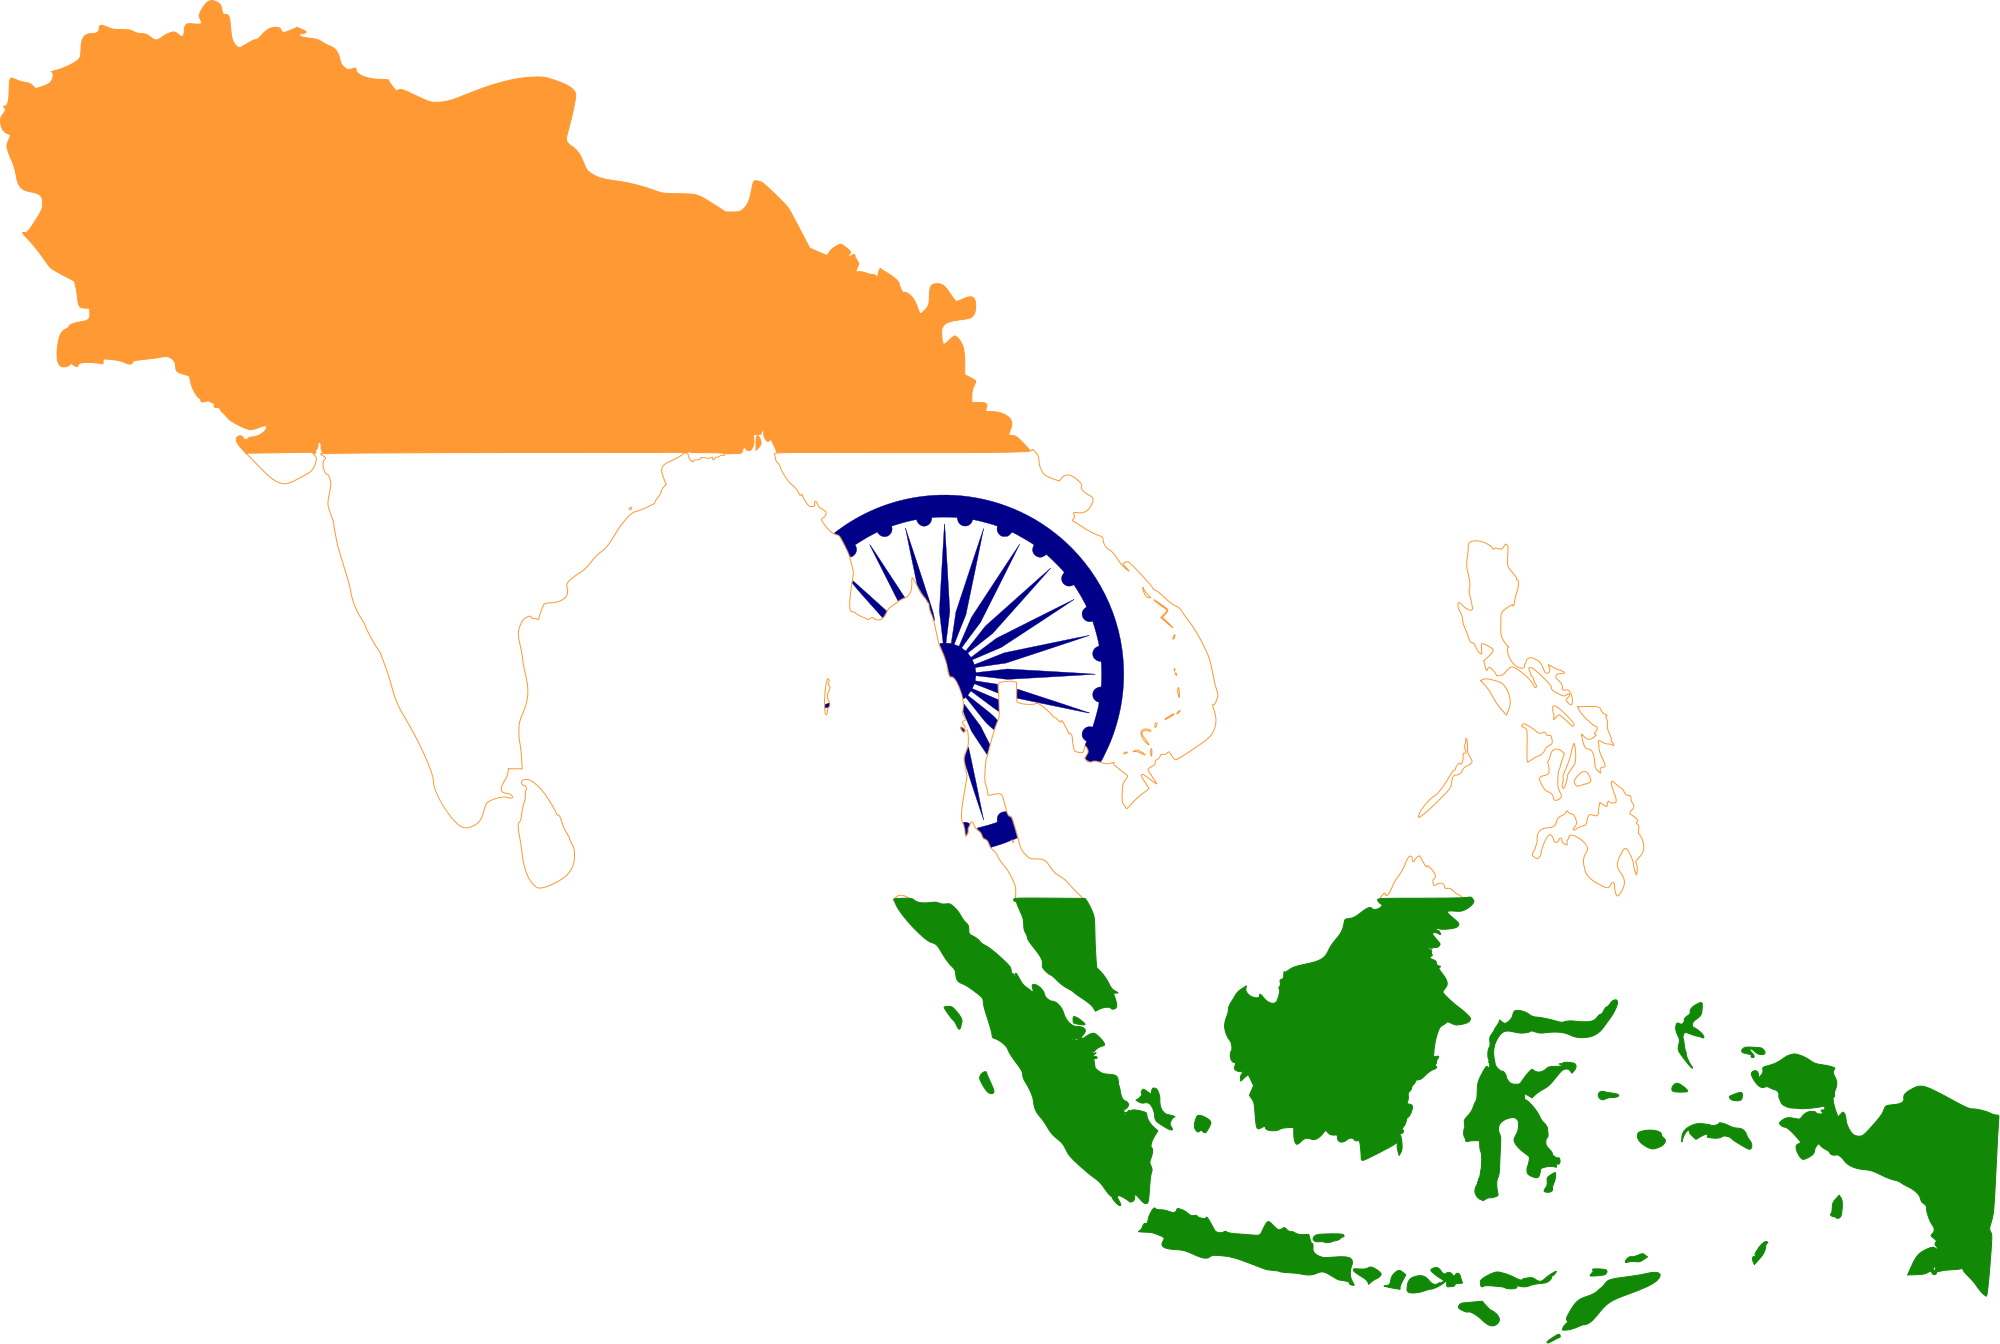 India svg #9, Download drawings